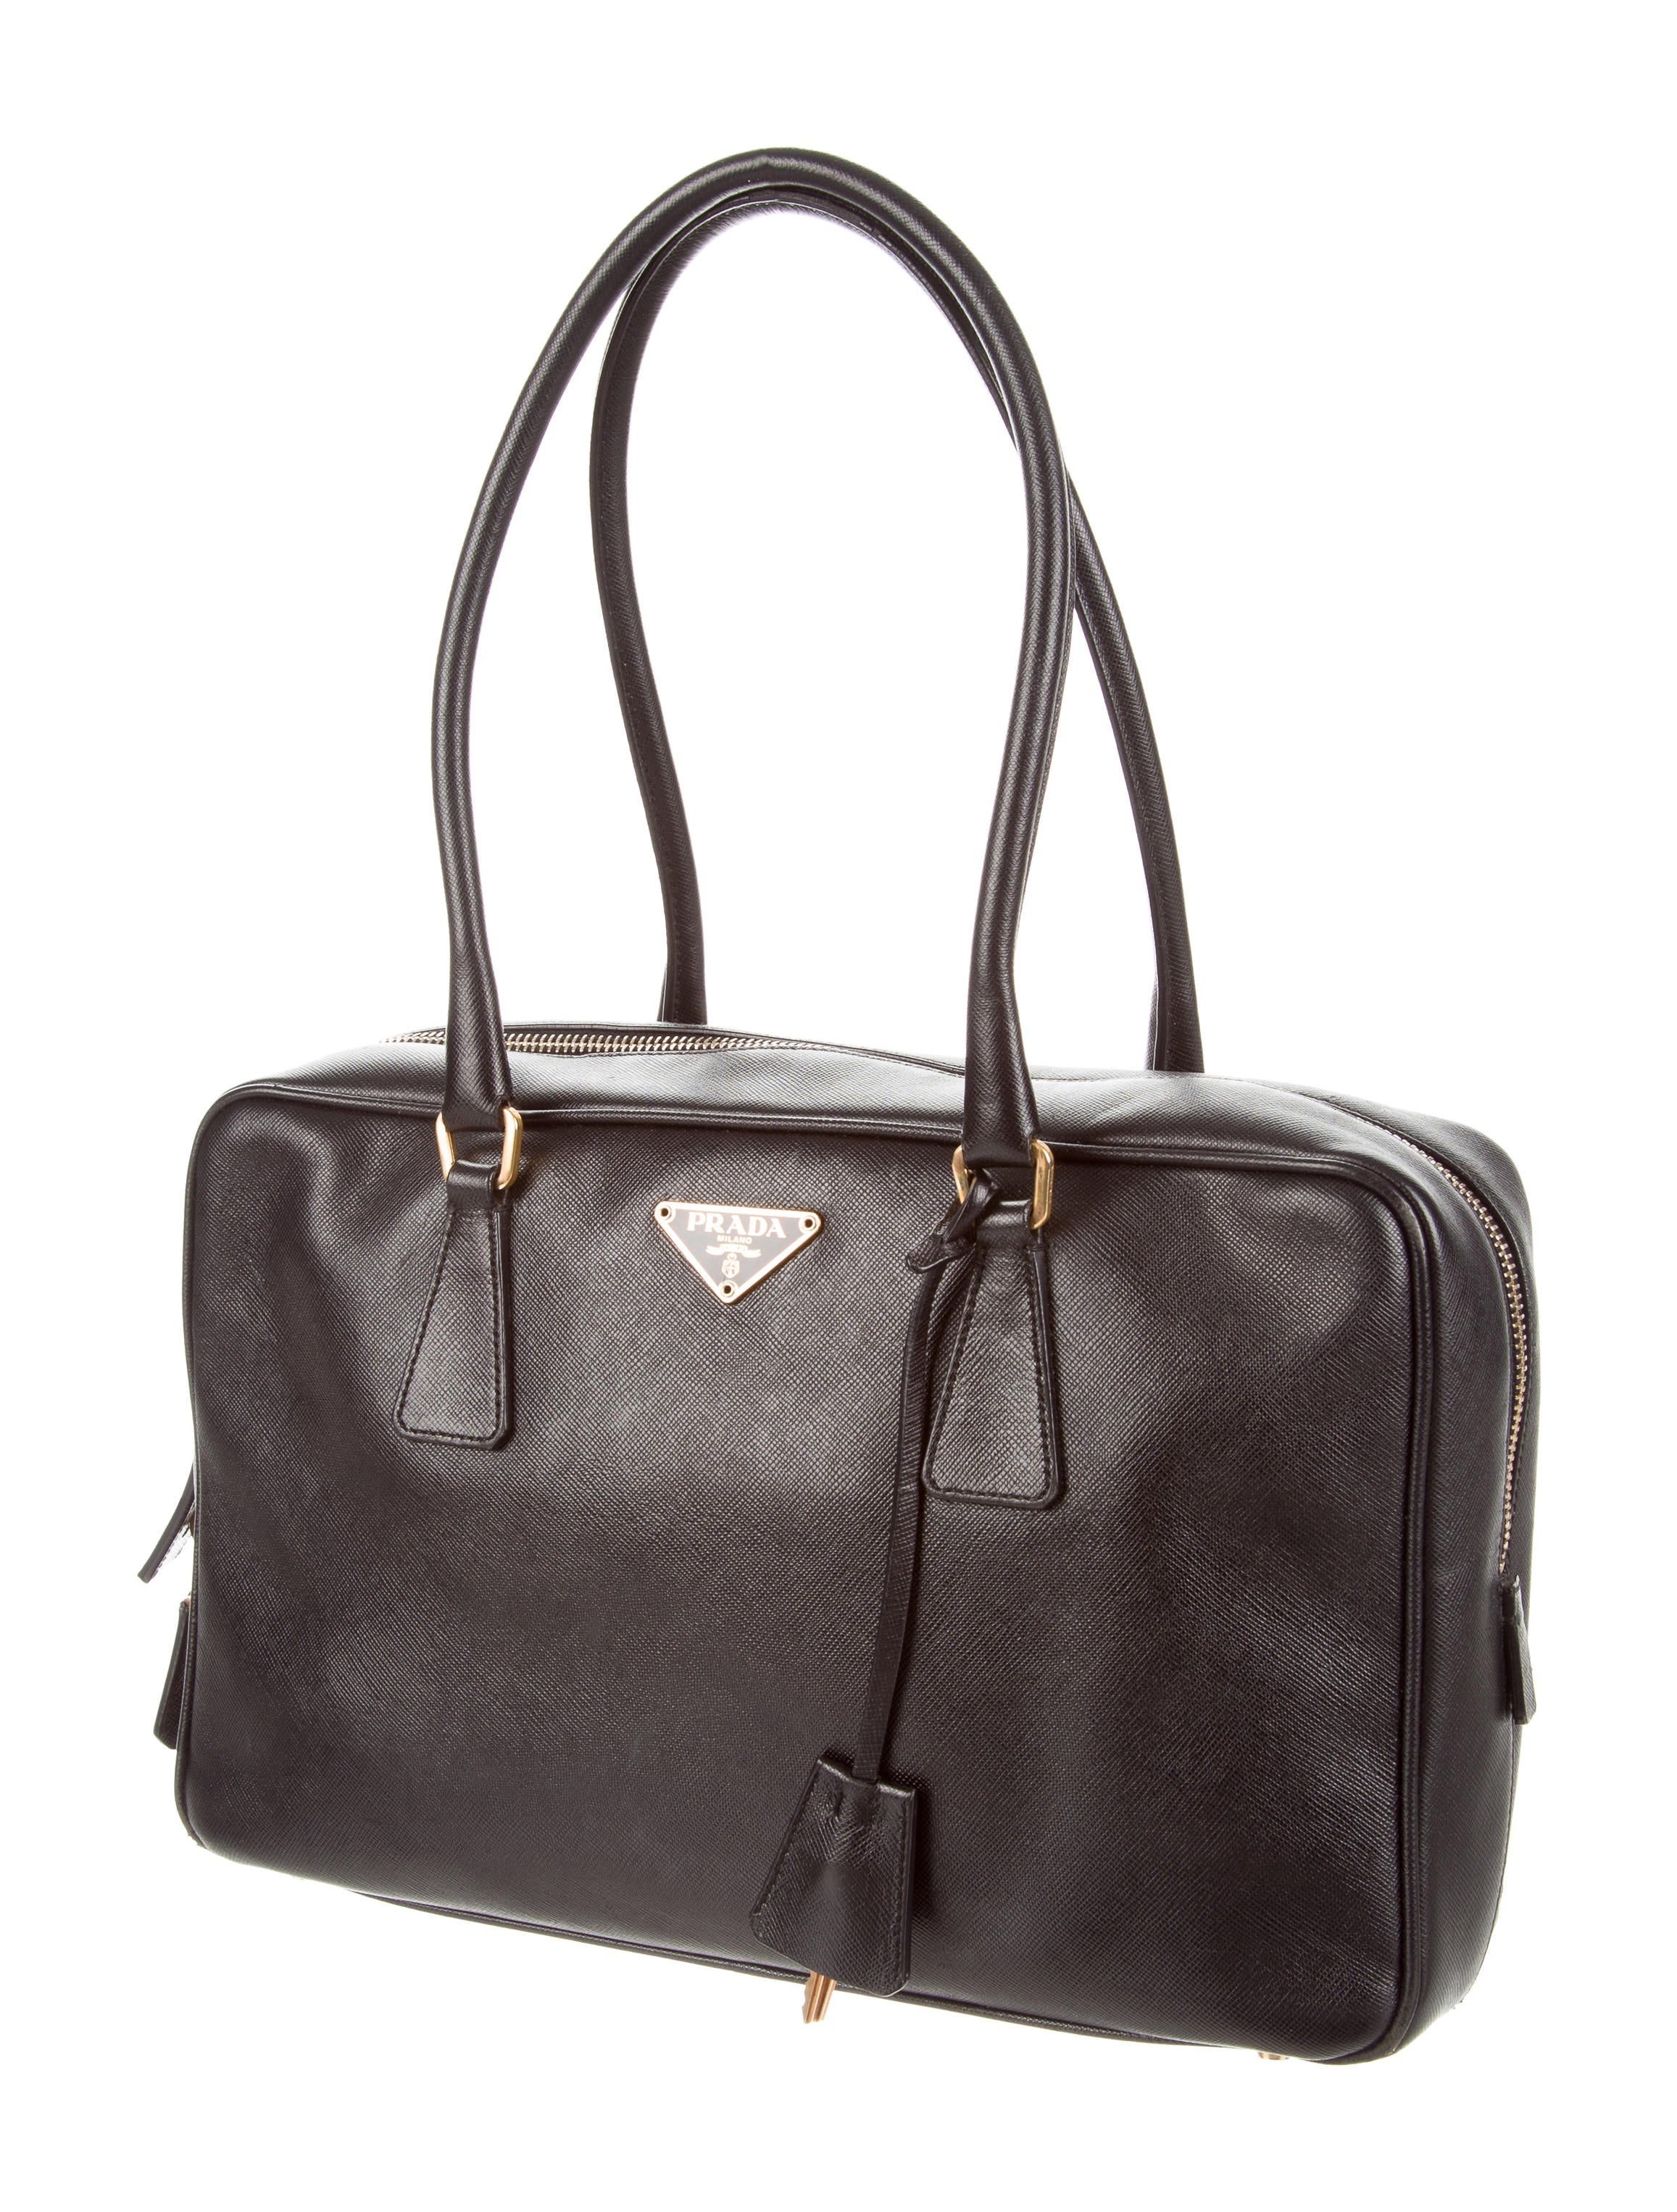 df495913ad8632 Prada Saffiano Lux Bowler Bag | Stanford Center for Opportunity ...